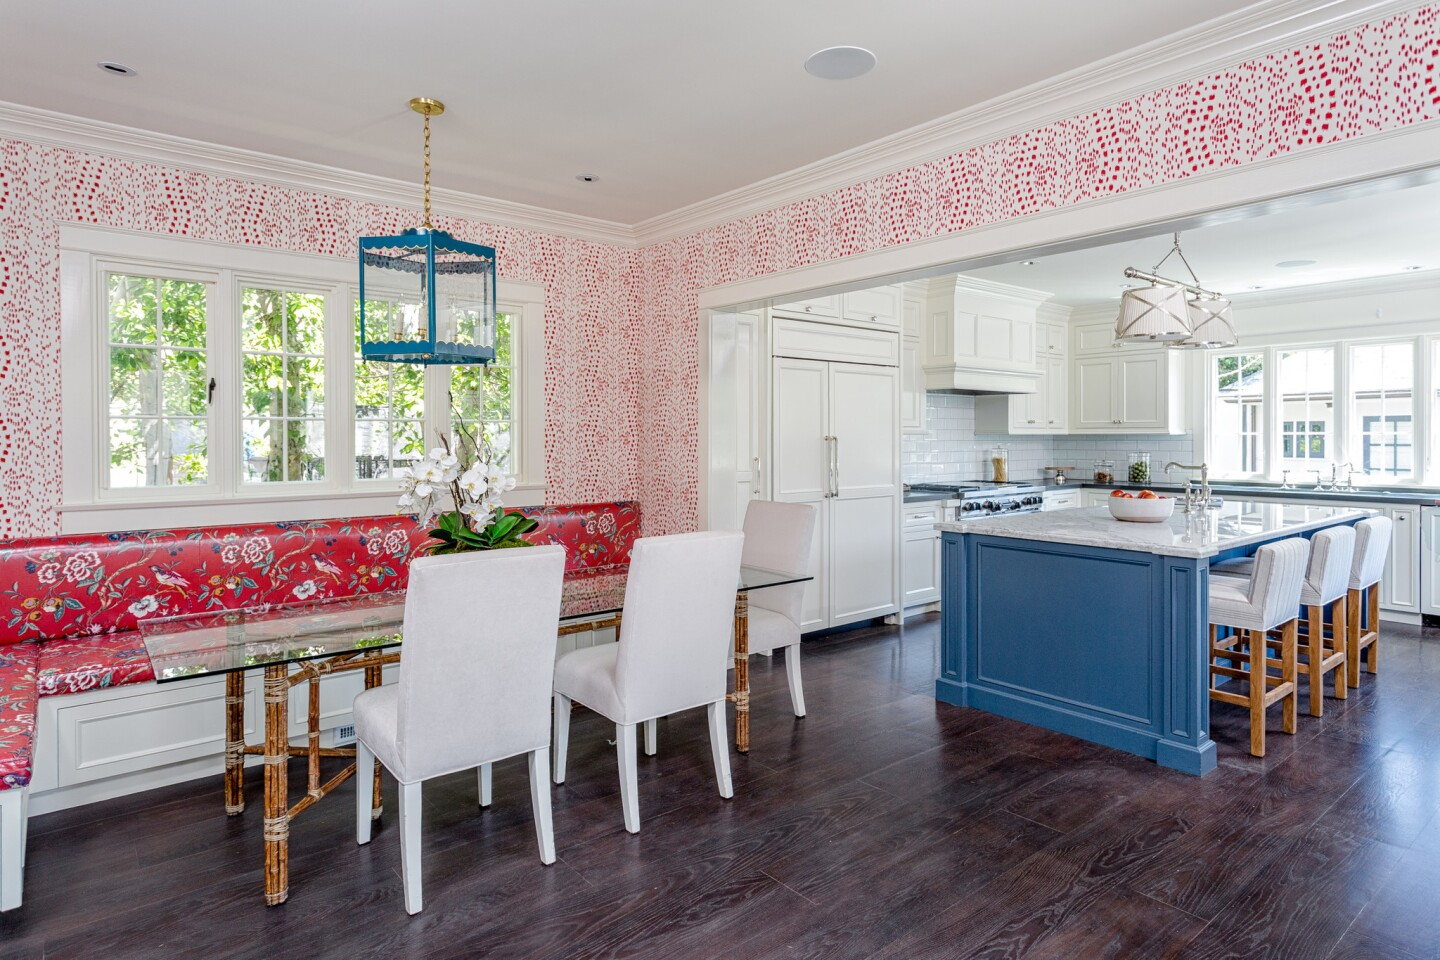 Home of the Day: Family friendly haven in West Hollywood